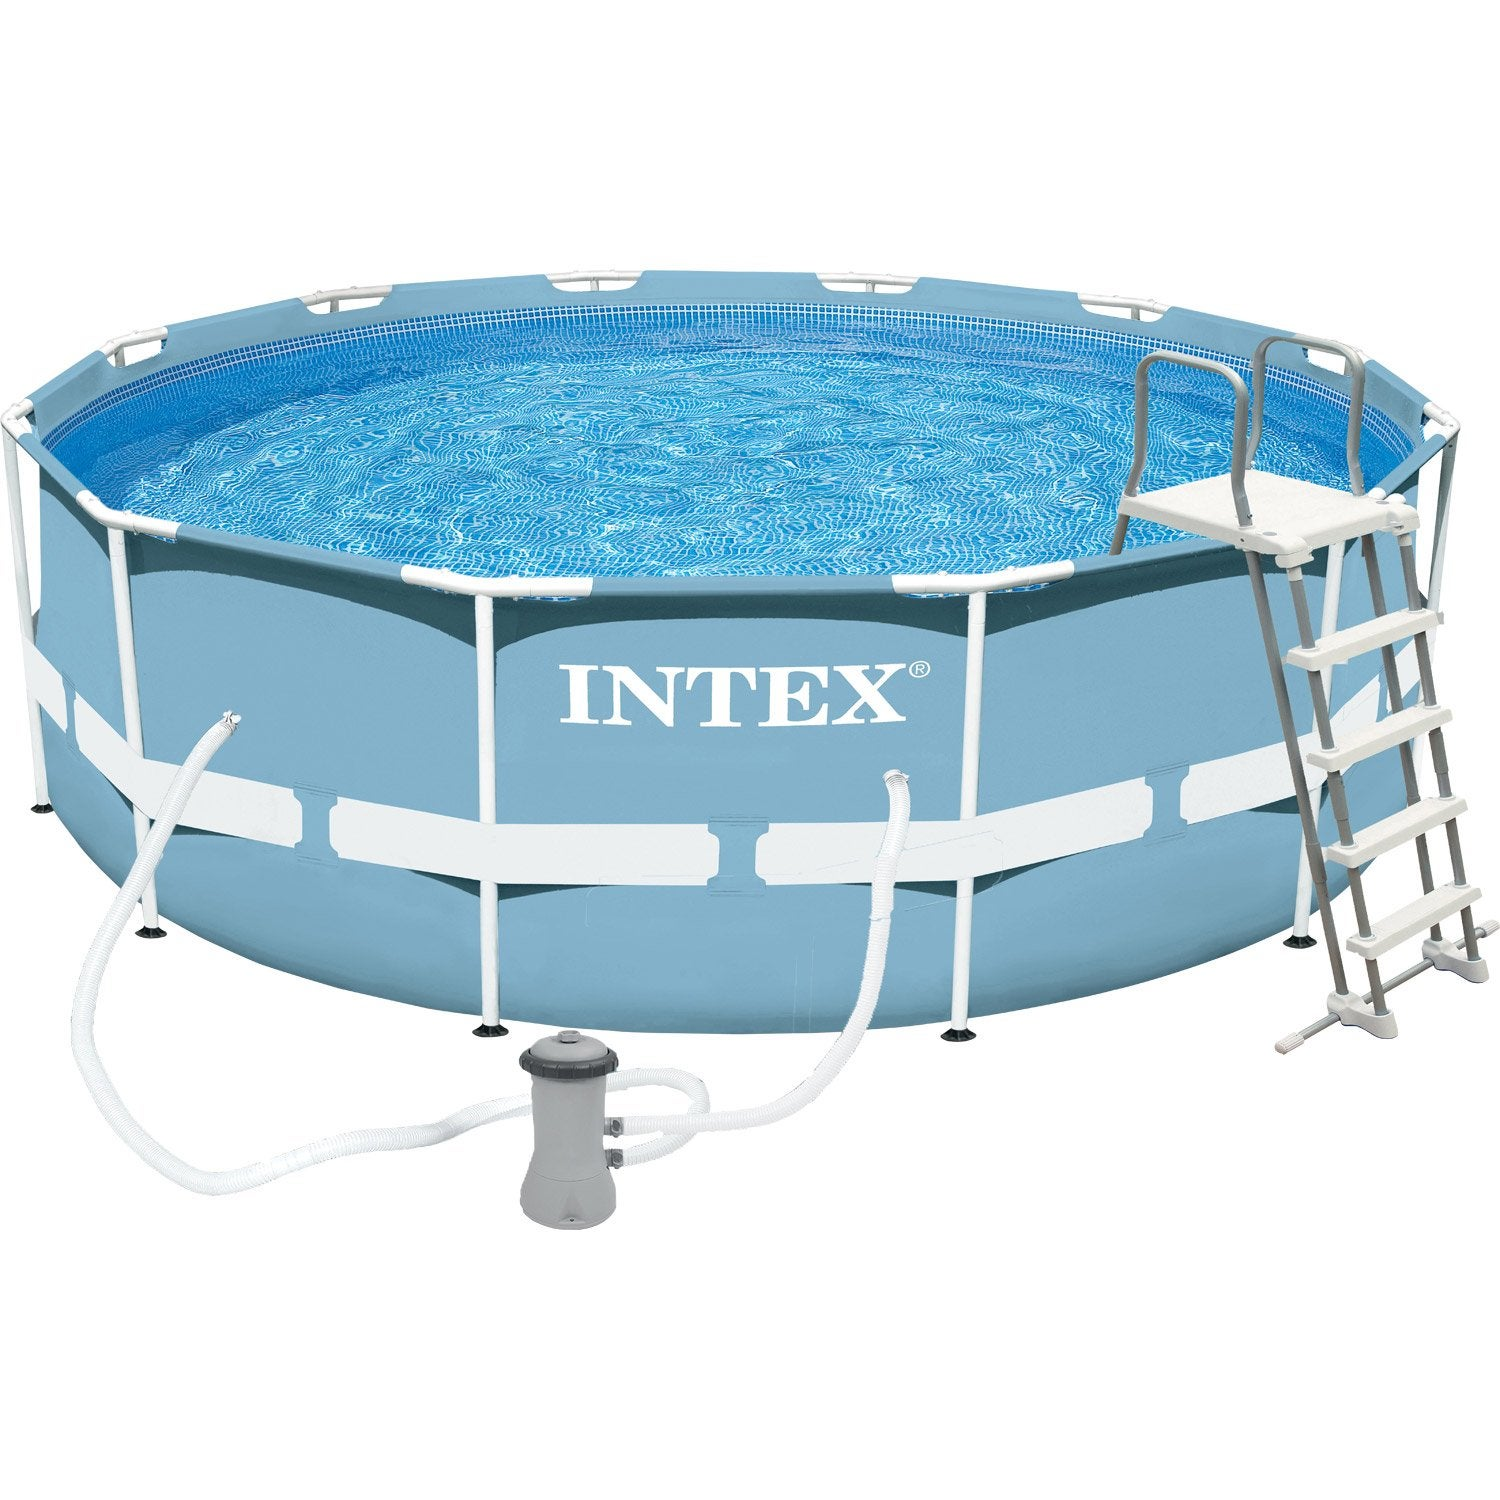 Piscine hors sol autoportante tubulaire prism frame intex for Piscine hors sol intex prix